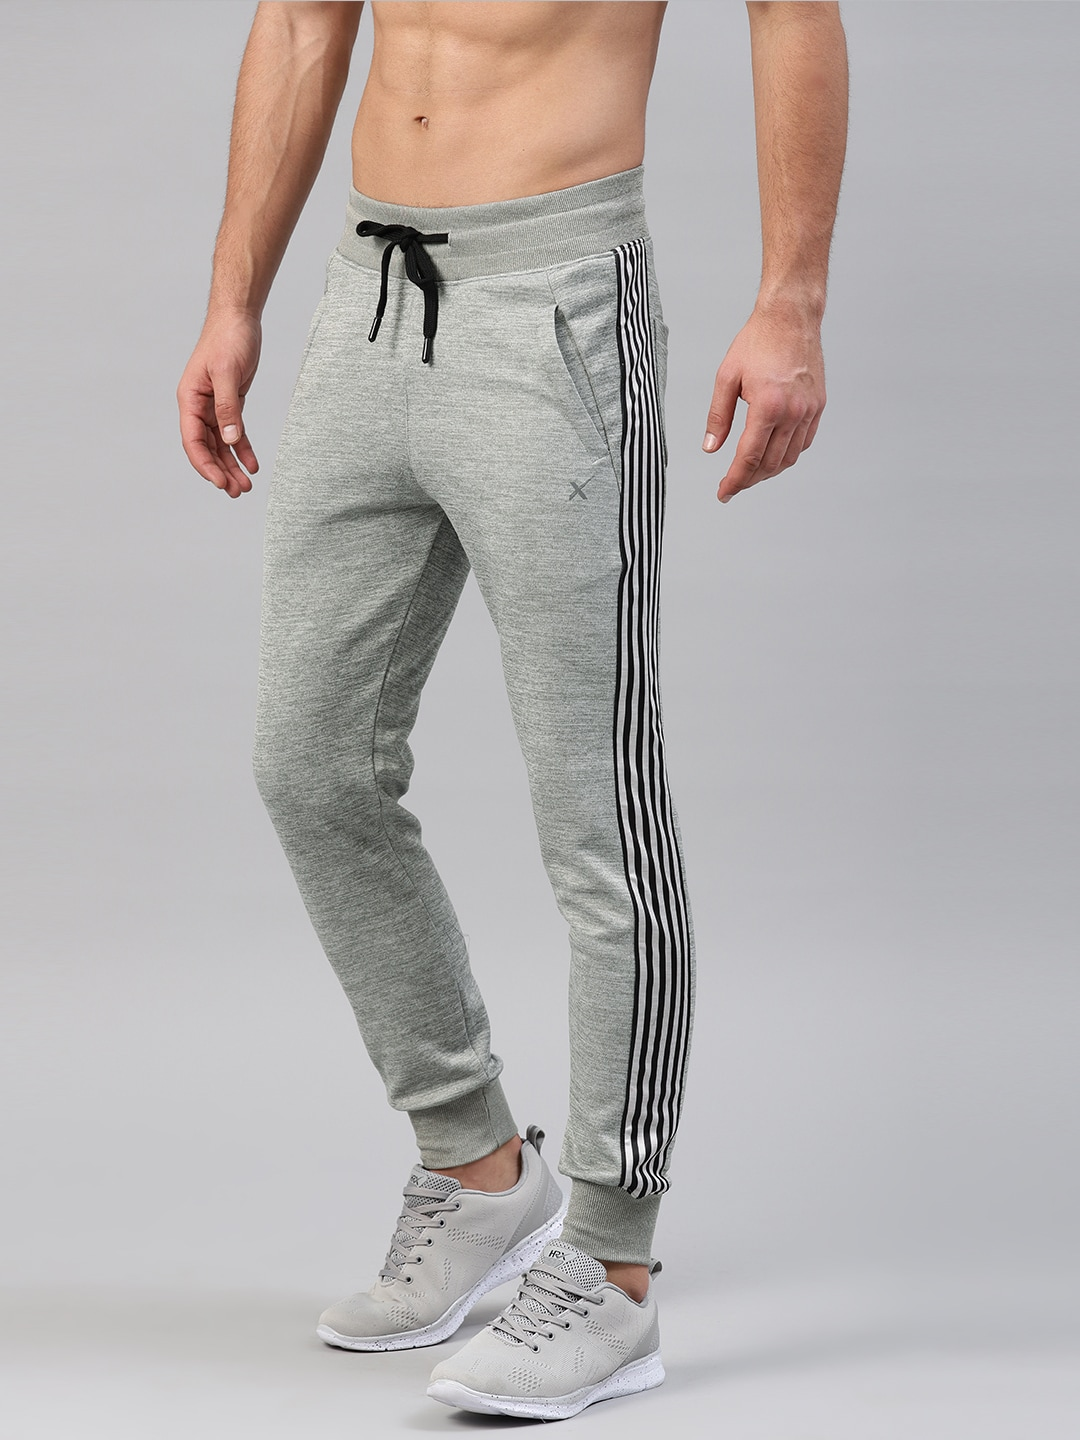 Joggers - Buy Joggers Pants For Men and Women Online - Myntra 92d94985610